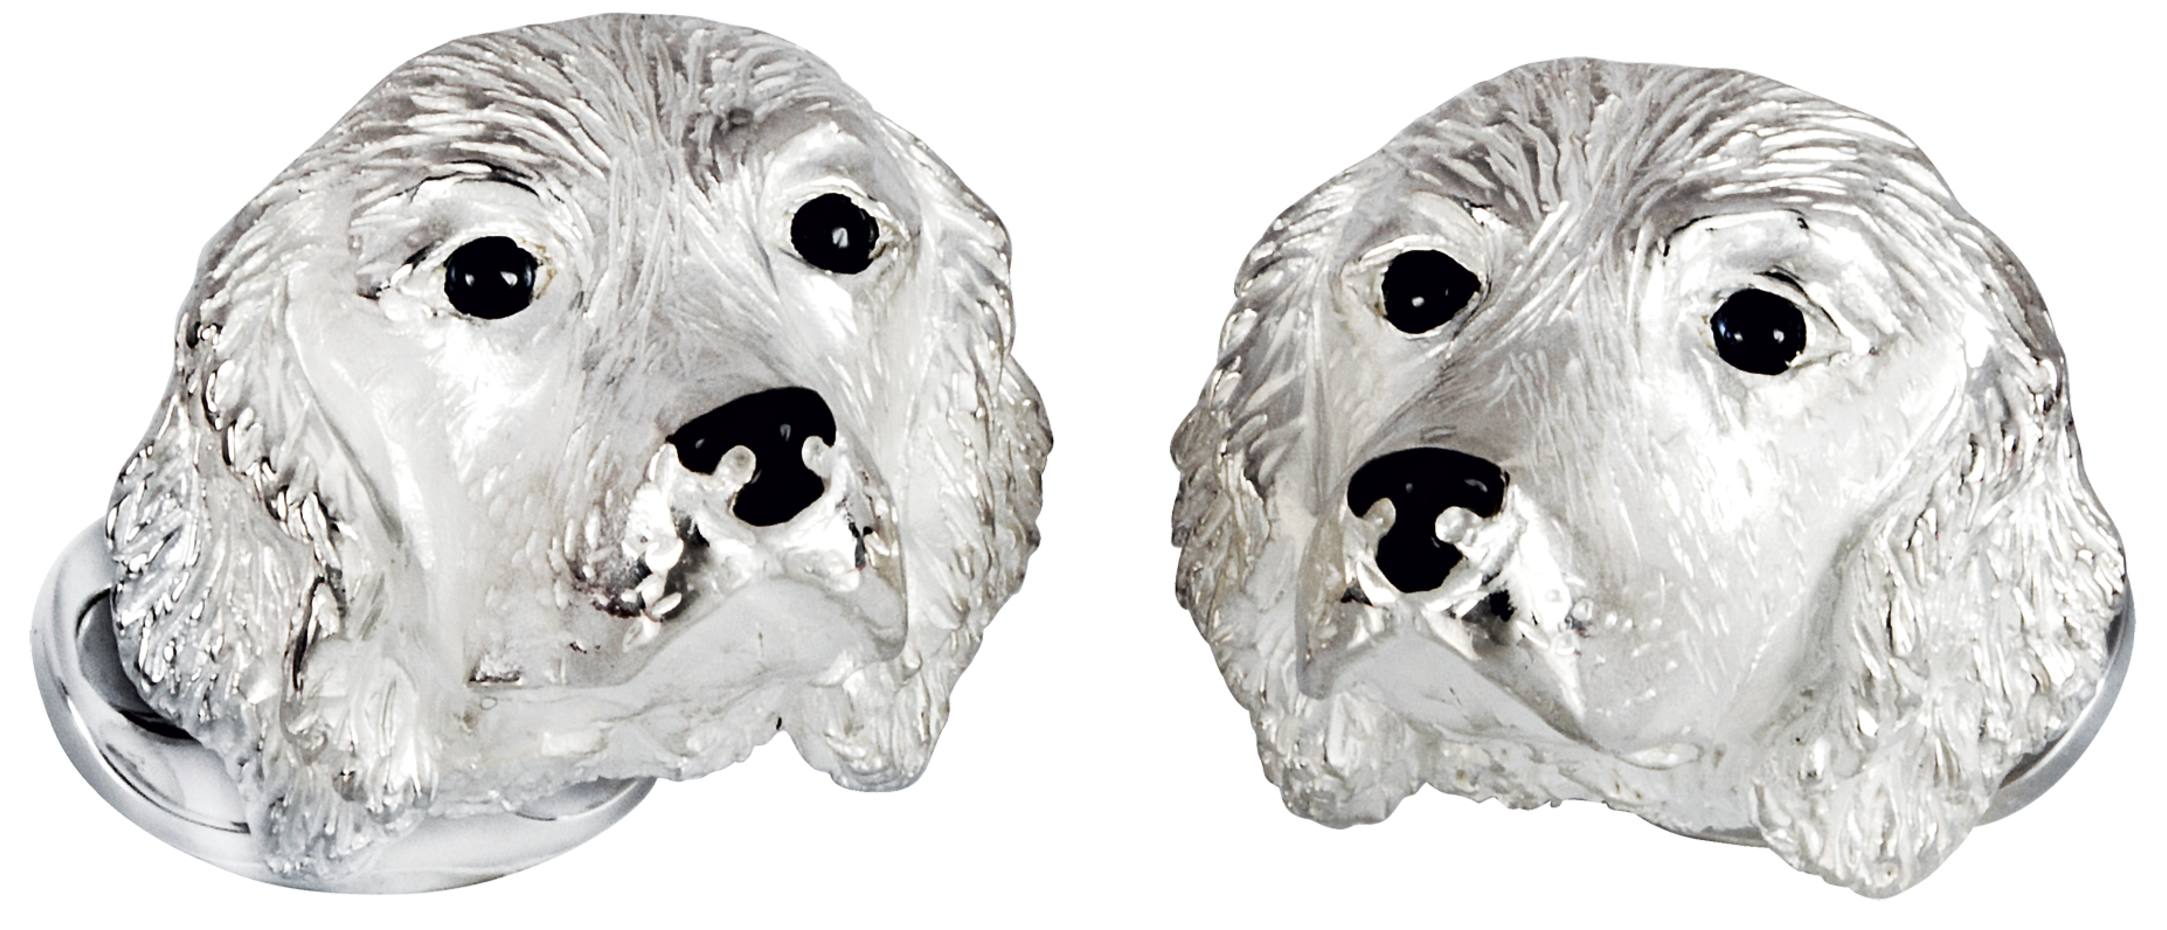 Silver and sapphire Spaniel cufflinks, £300; 10 per cent of proceeds go to the Dogs Trust (dogstrust.org.uk)